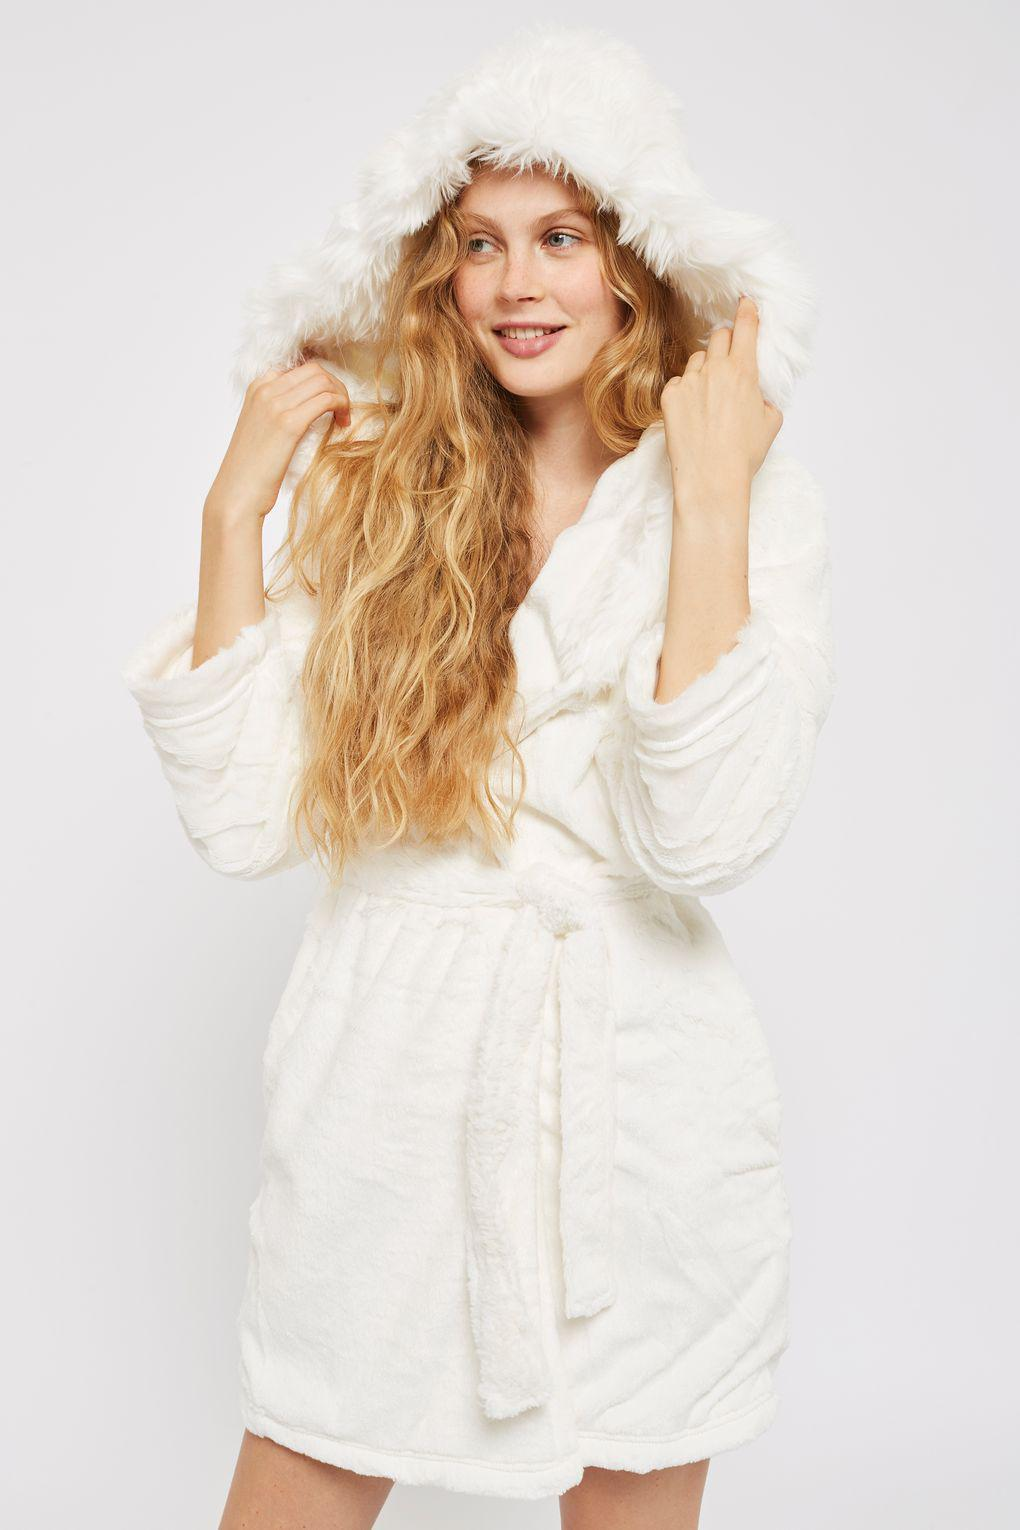 TOPSHOP Slinky Faux Fur Hooded Robe in Natural - Lyst 44087c8e3